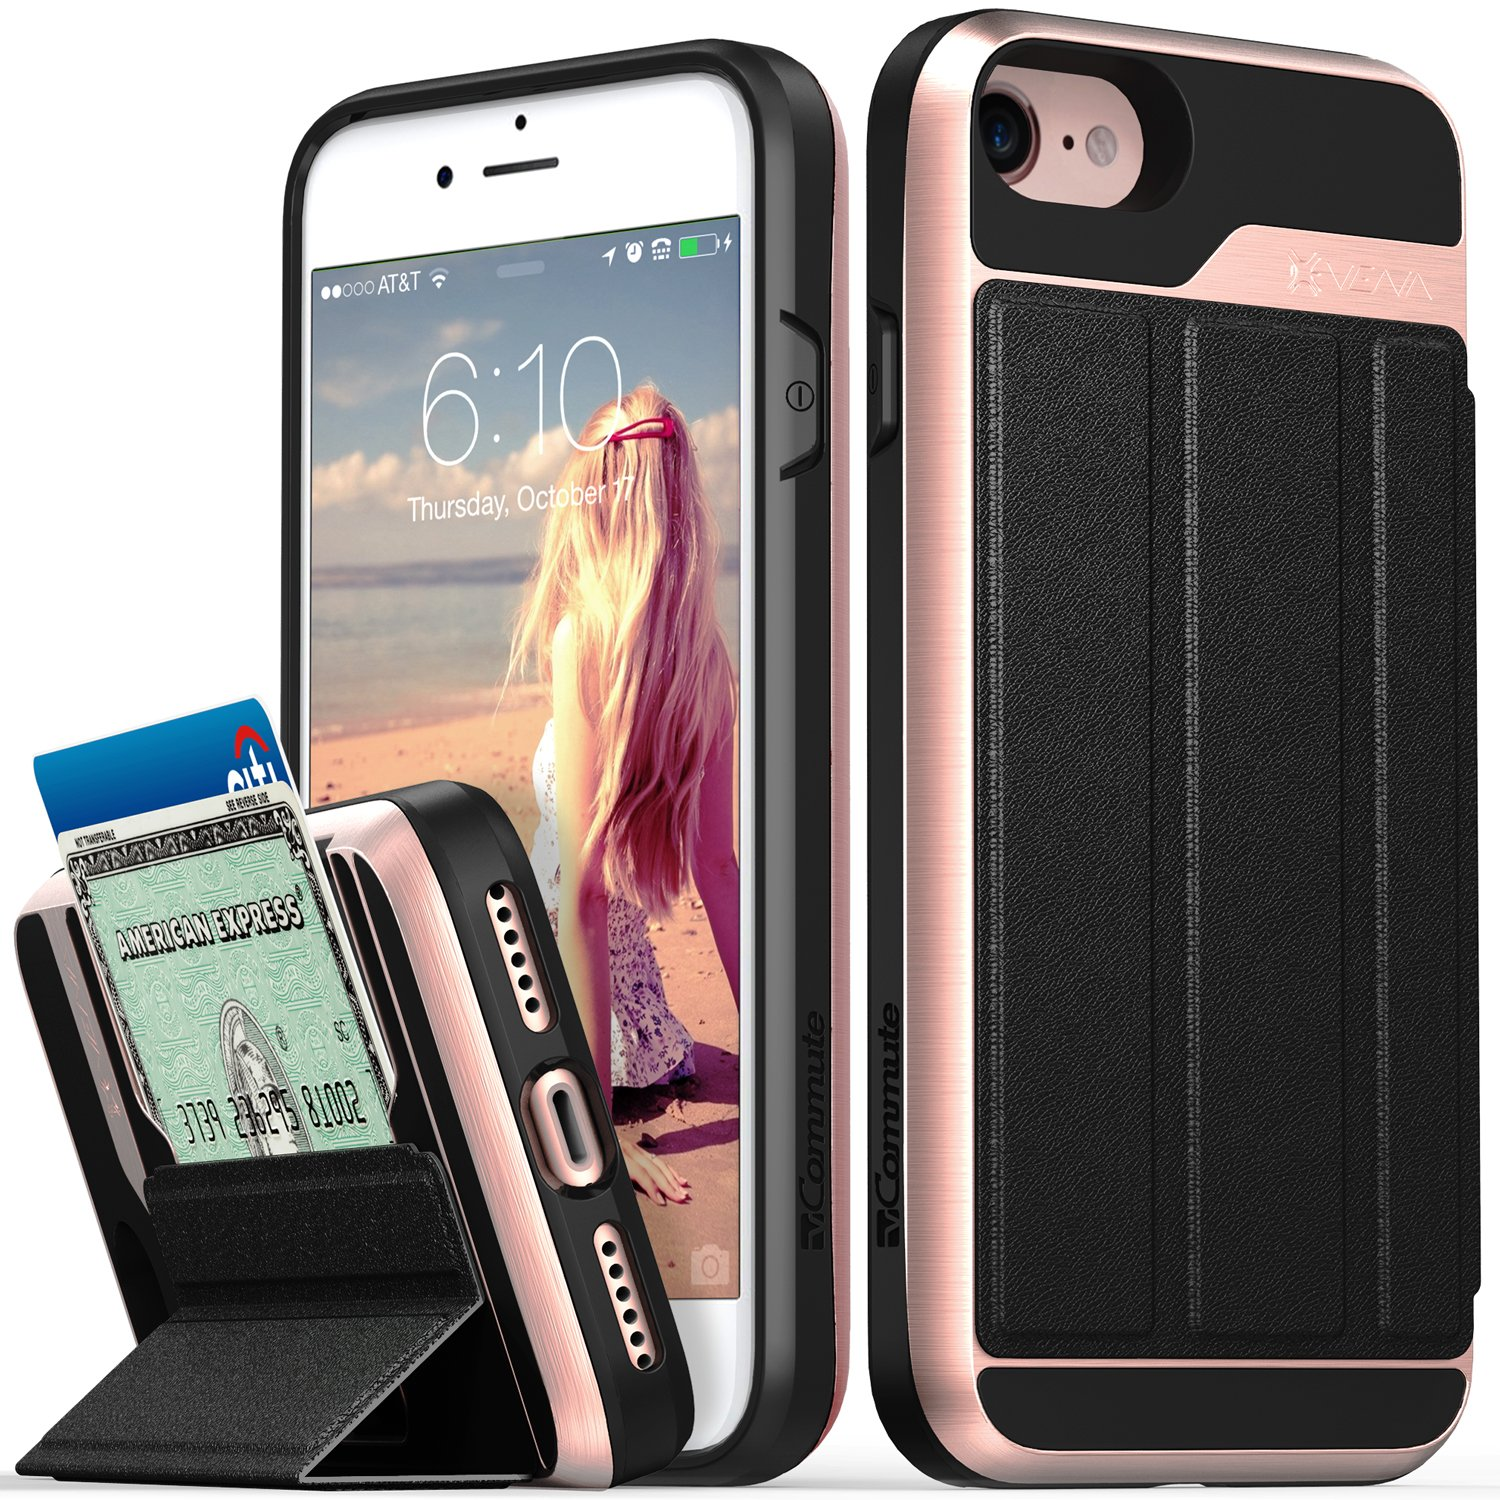 iPhone 8 Wallet Case, iPhone 7 Wallet Case, Vena [vCommute][Military Grade Drop Protection] Flip Leather Cover Card Slot Holder with KickStand for Apple iPhone 8 / iPhone 7 (Rose Gold/Black) by Vena (Image #1)